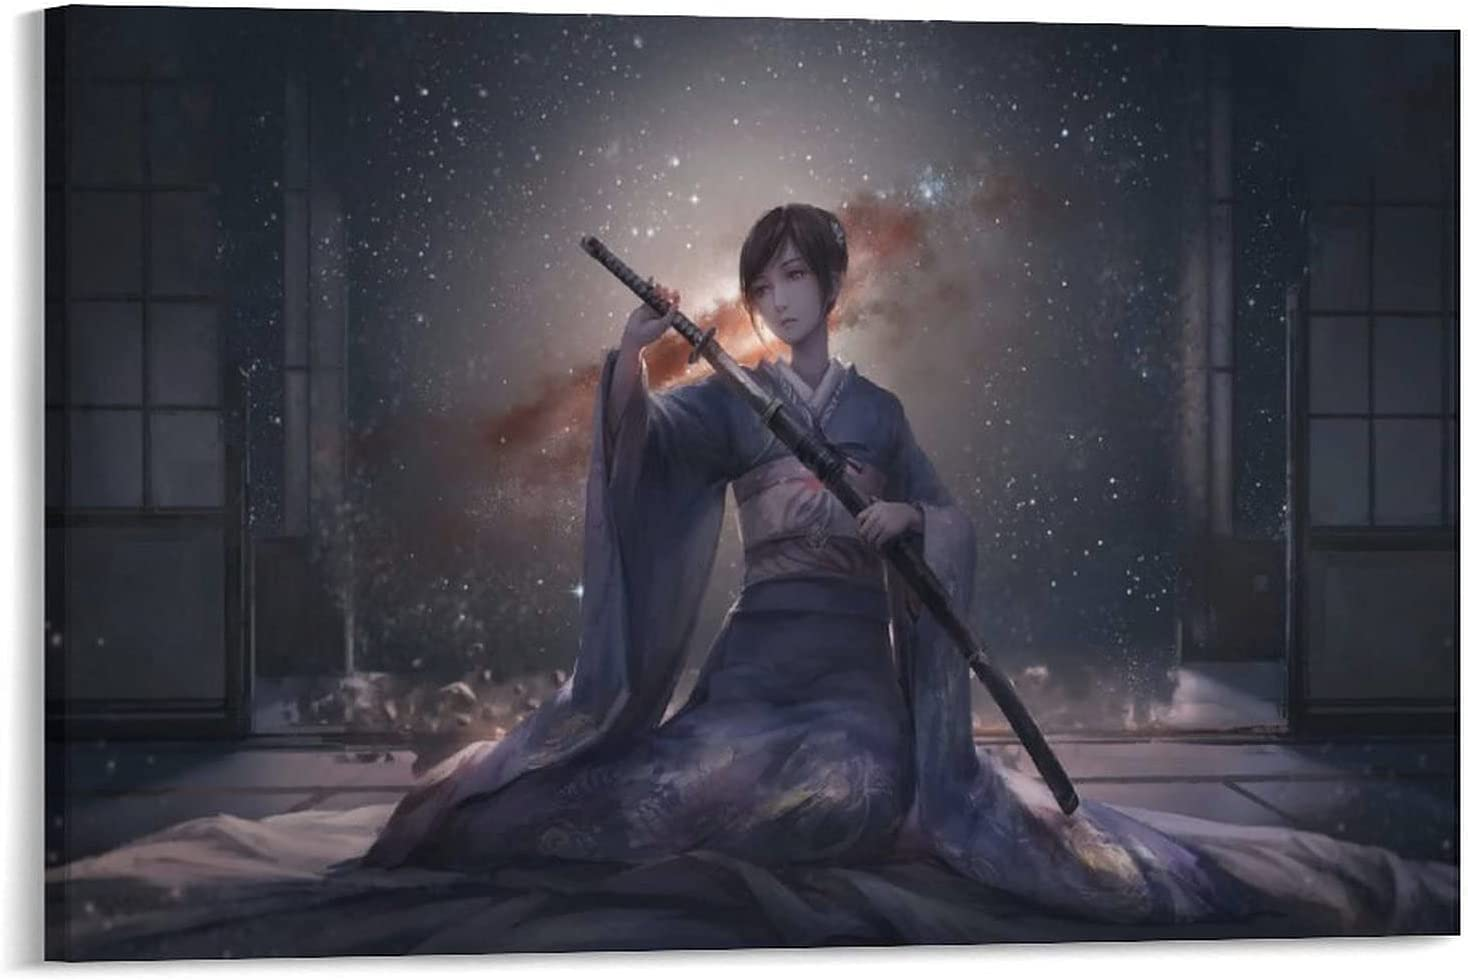 LANSHANG Japanese Samurai Girl Price reduction Room Super sale period limited Aesthetic Poster 3 Canvas